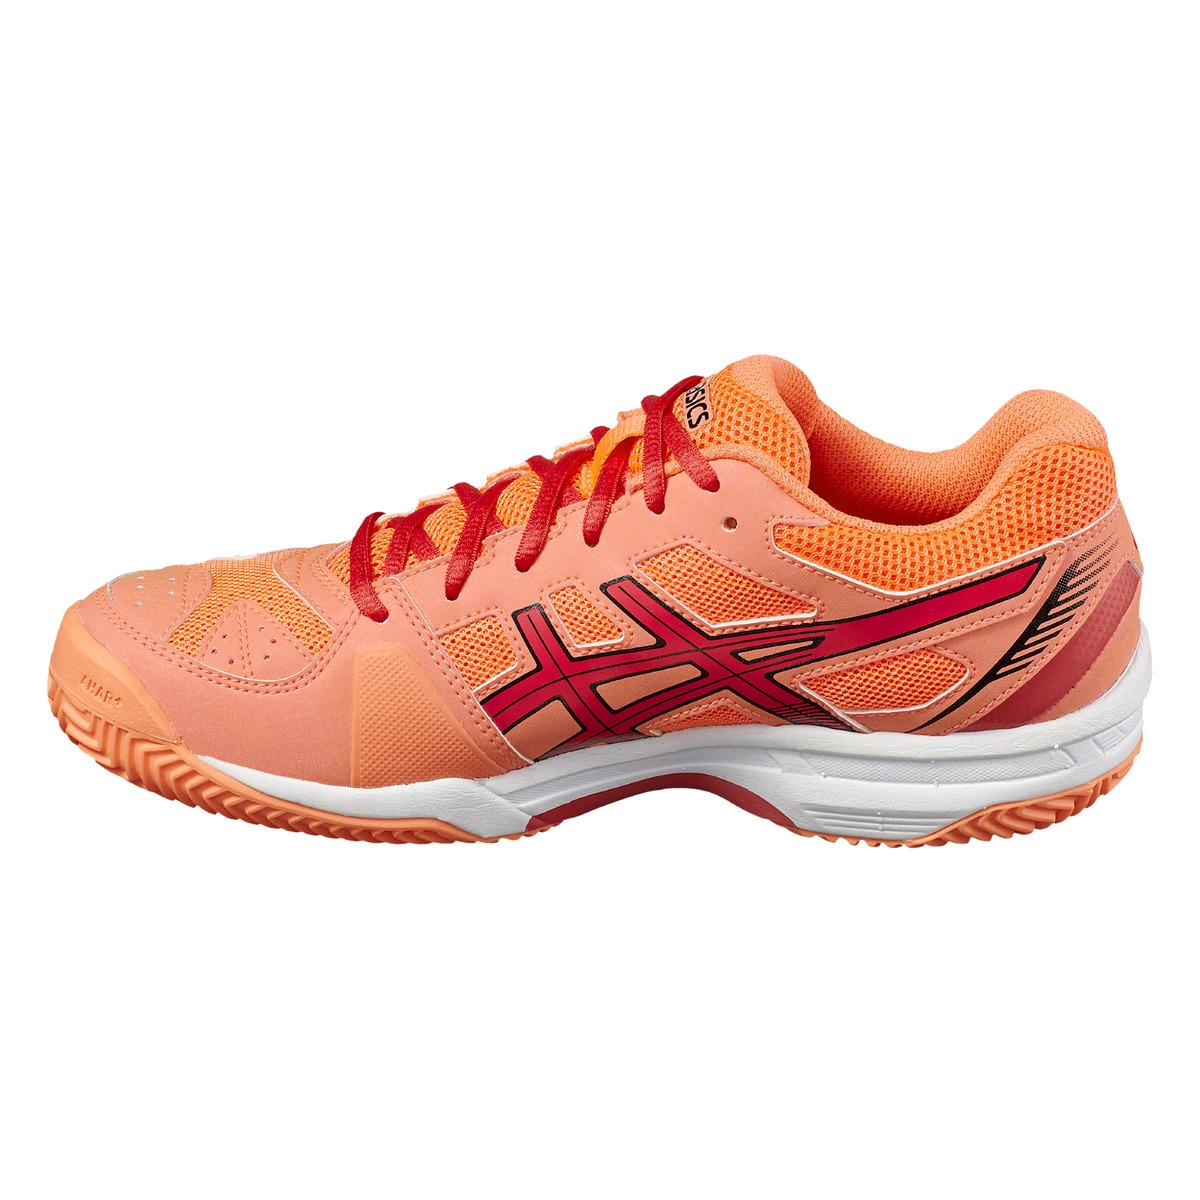 Paddle Tennis Shoes Womens